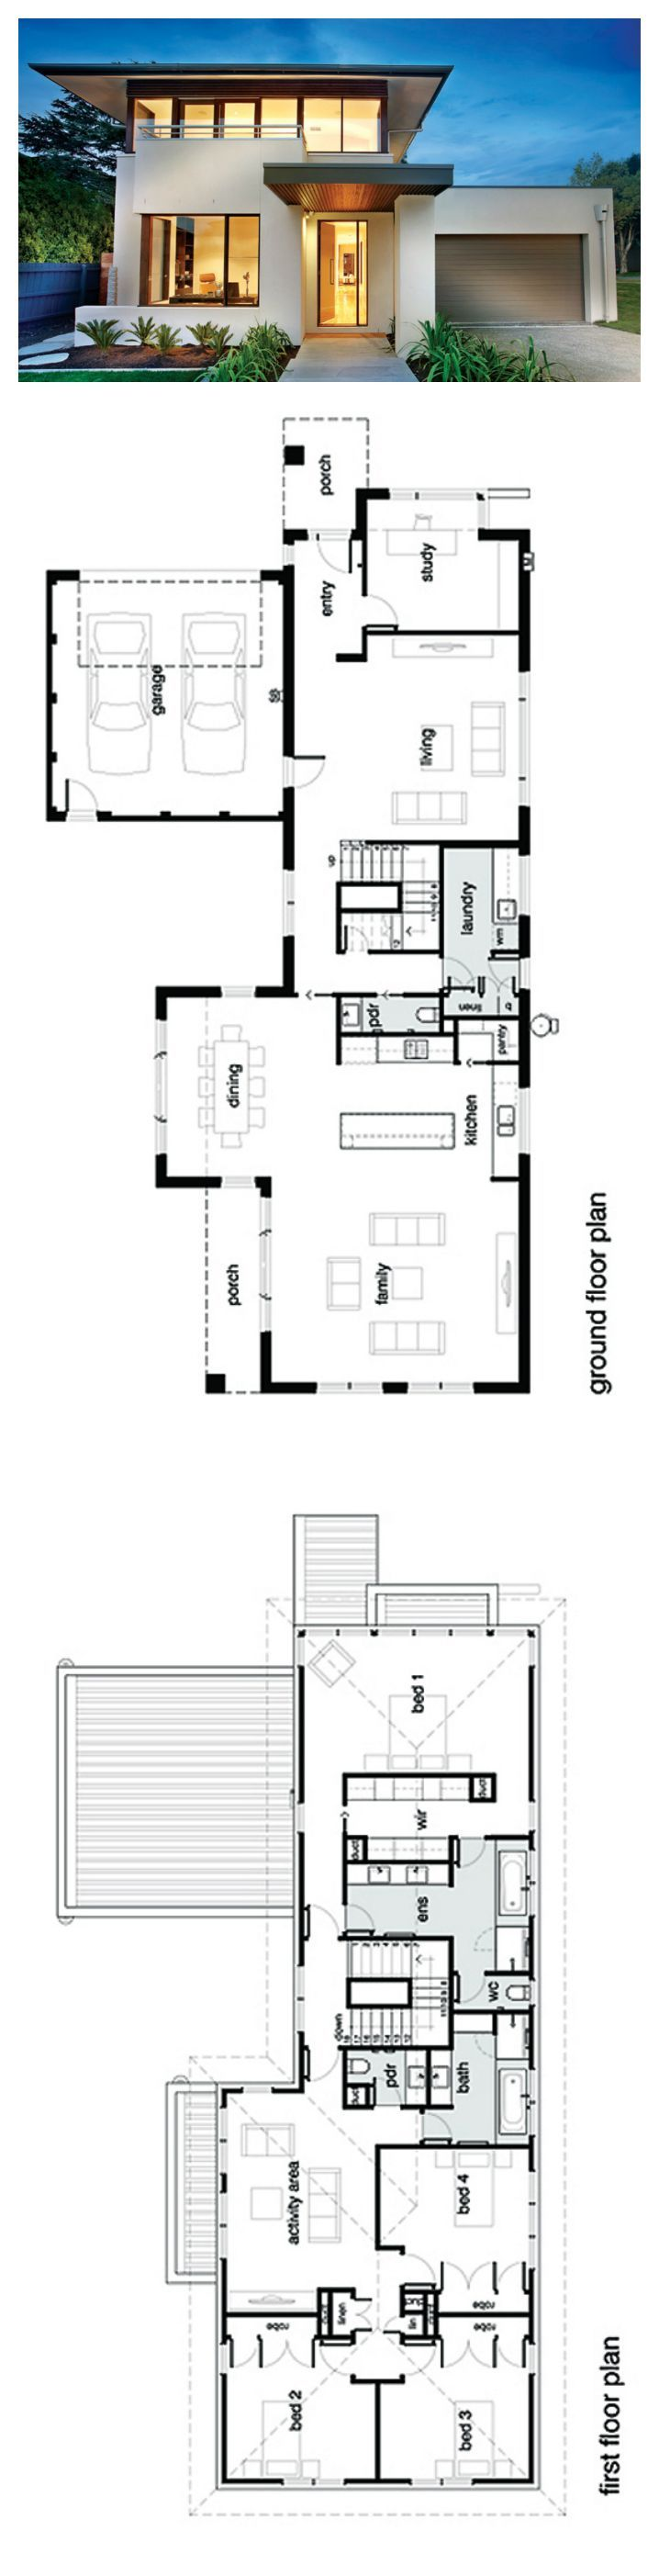 Best 25 modern house plans ideas on pinterest for House planning games